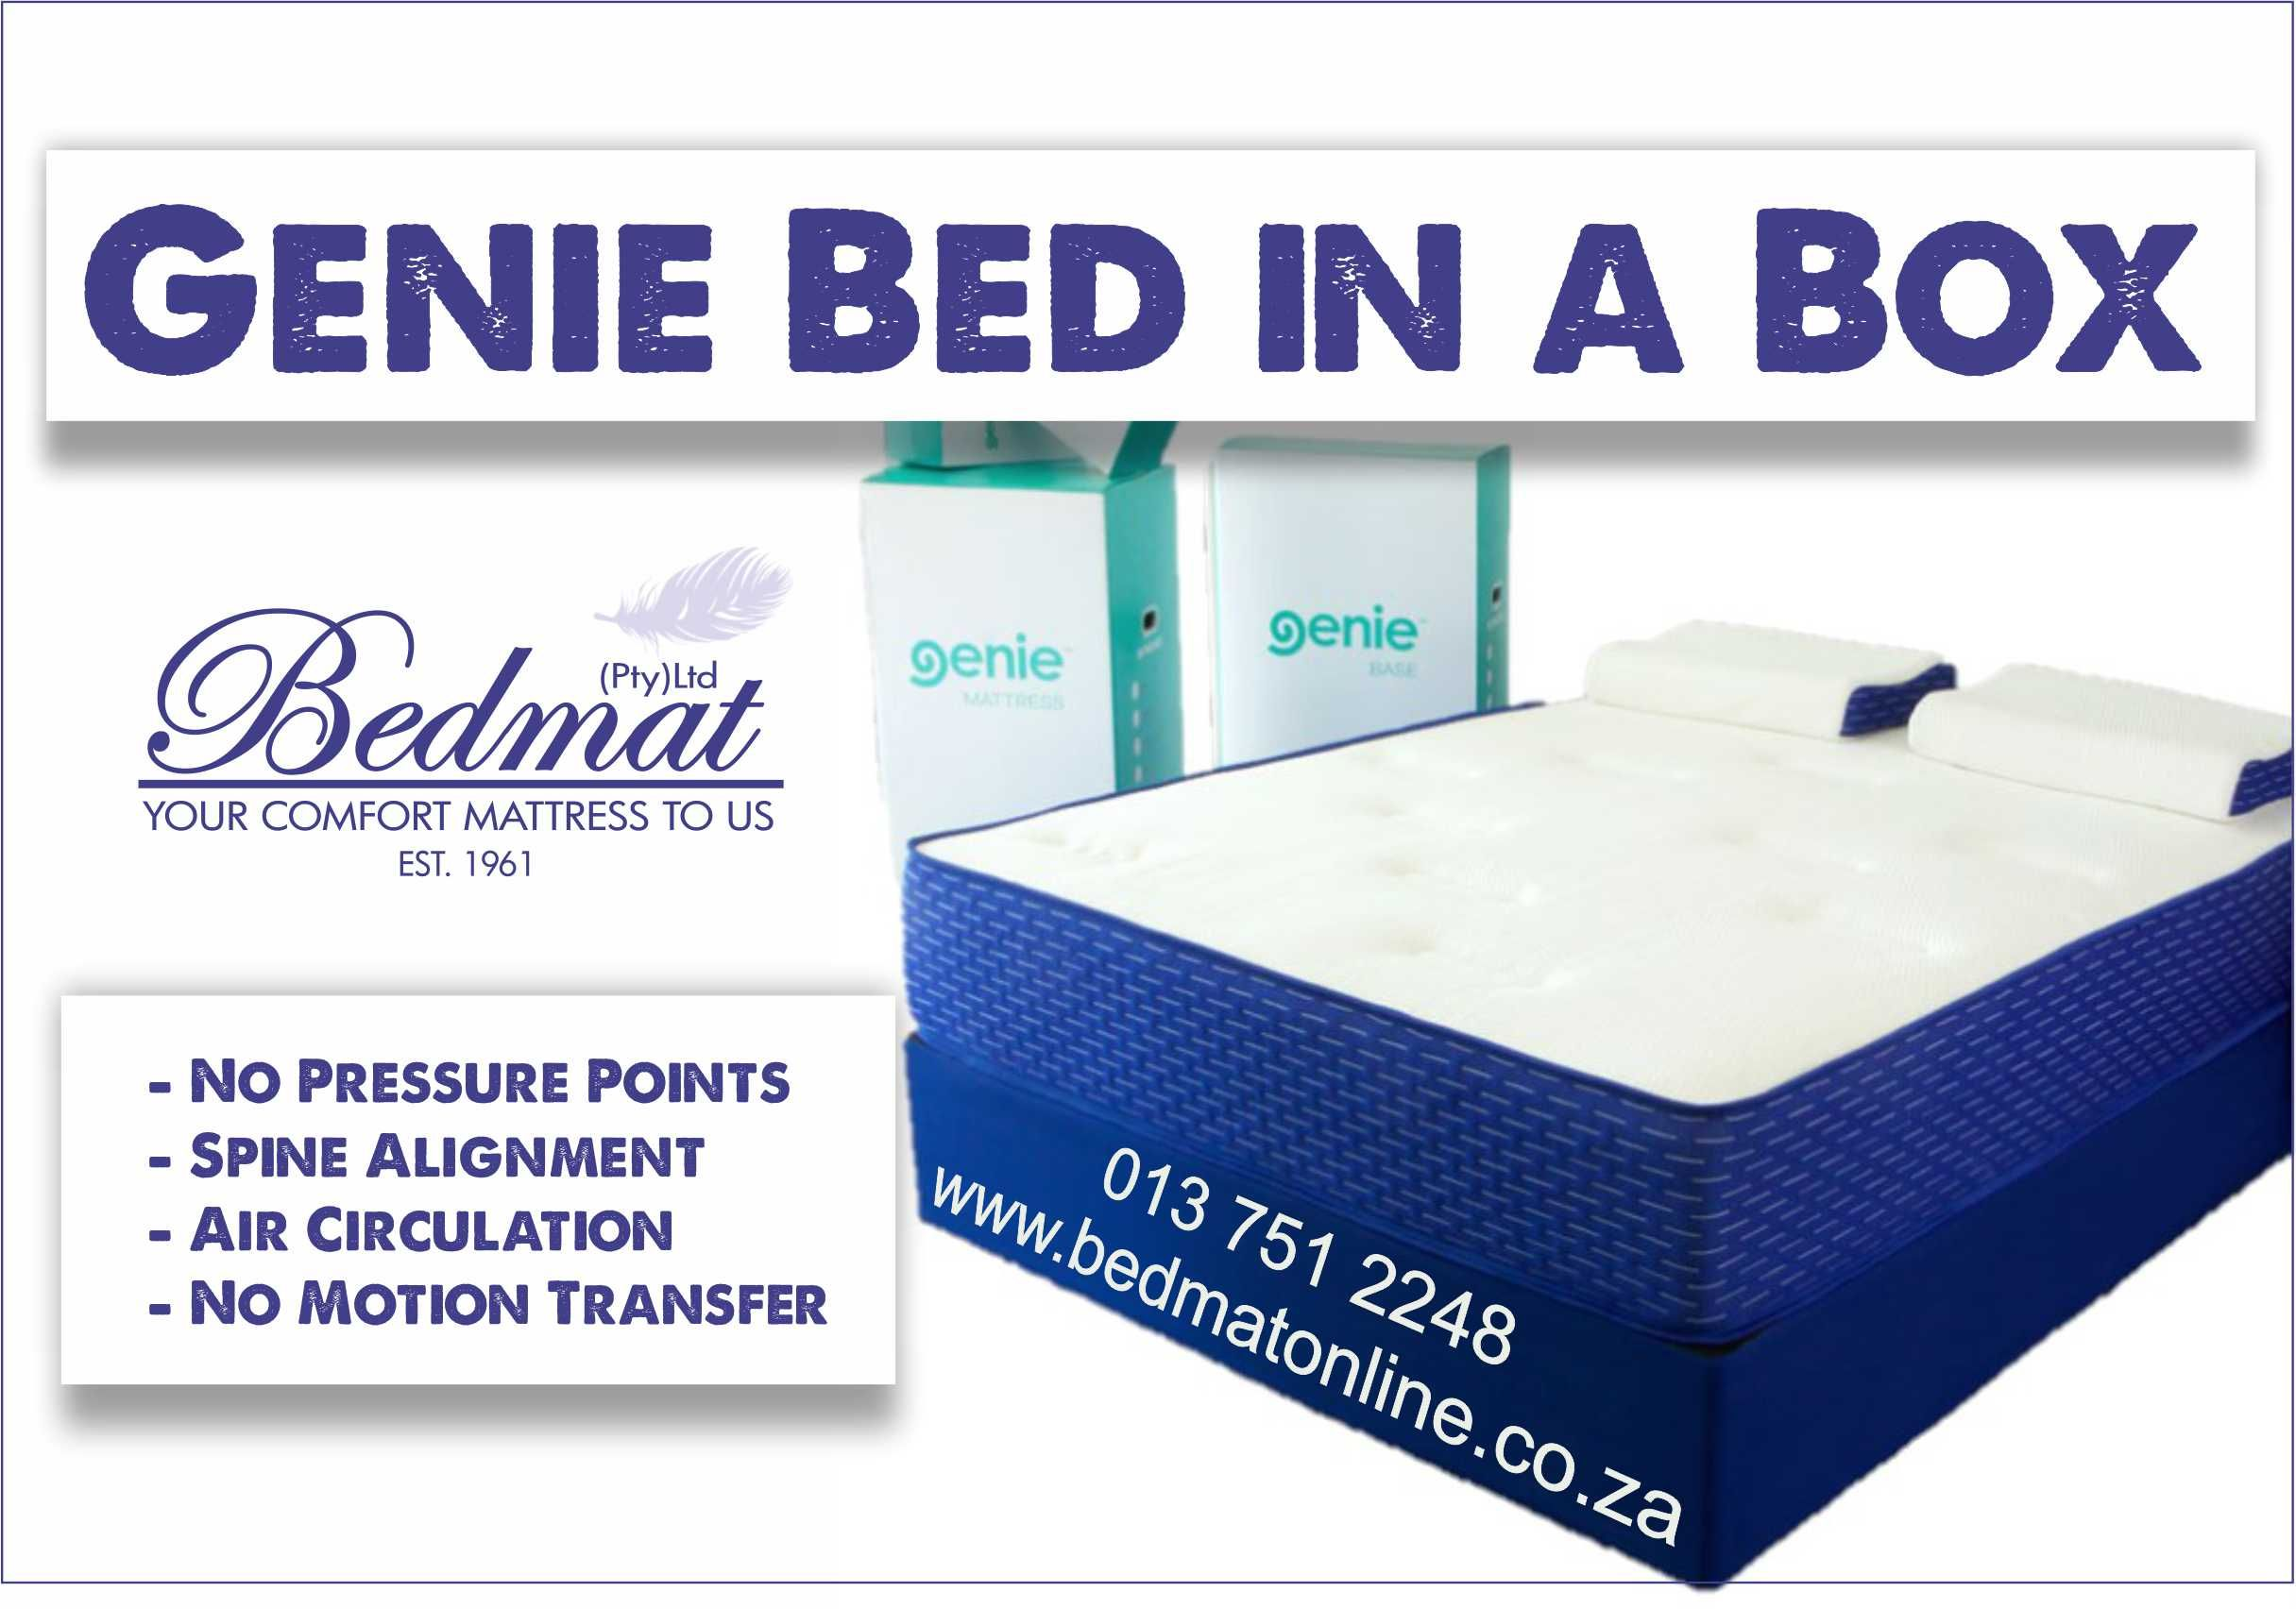 Bedmat Online White River South Africa Box Bed Pressure Points Comfort Mattress